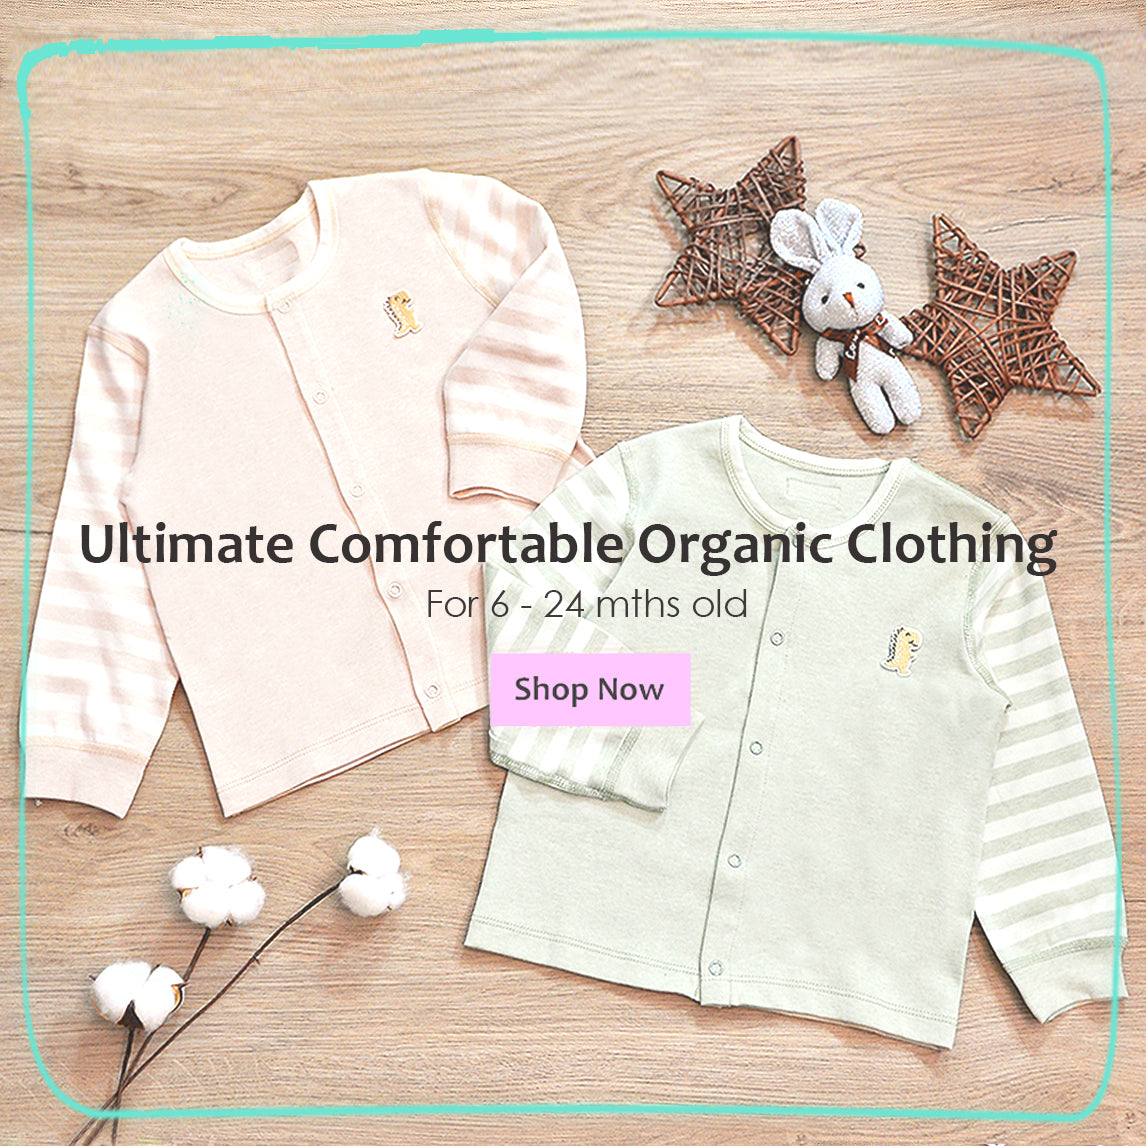 Organic Garments for 6mth & above